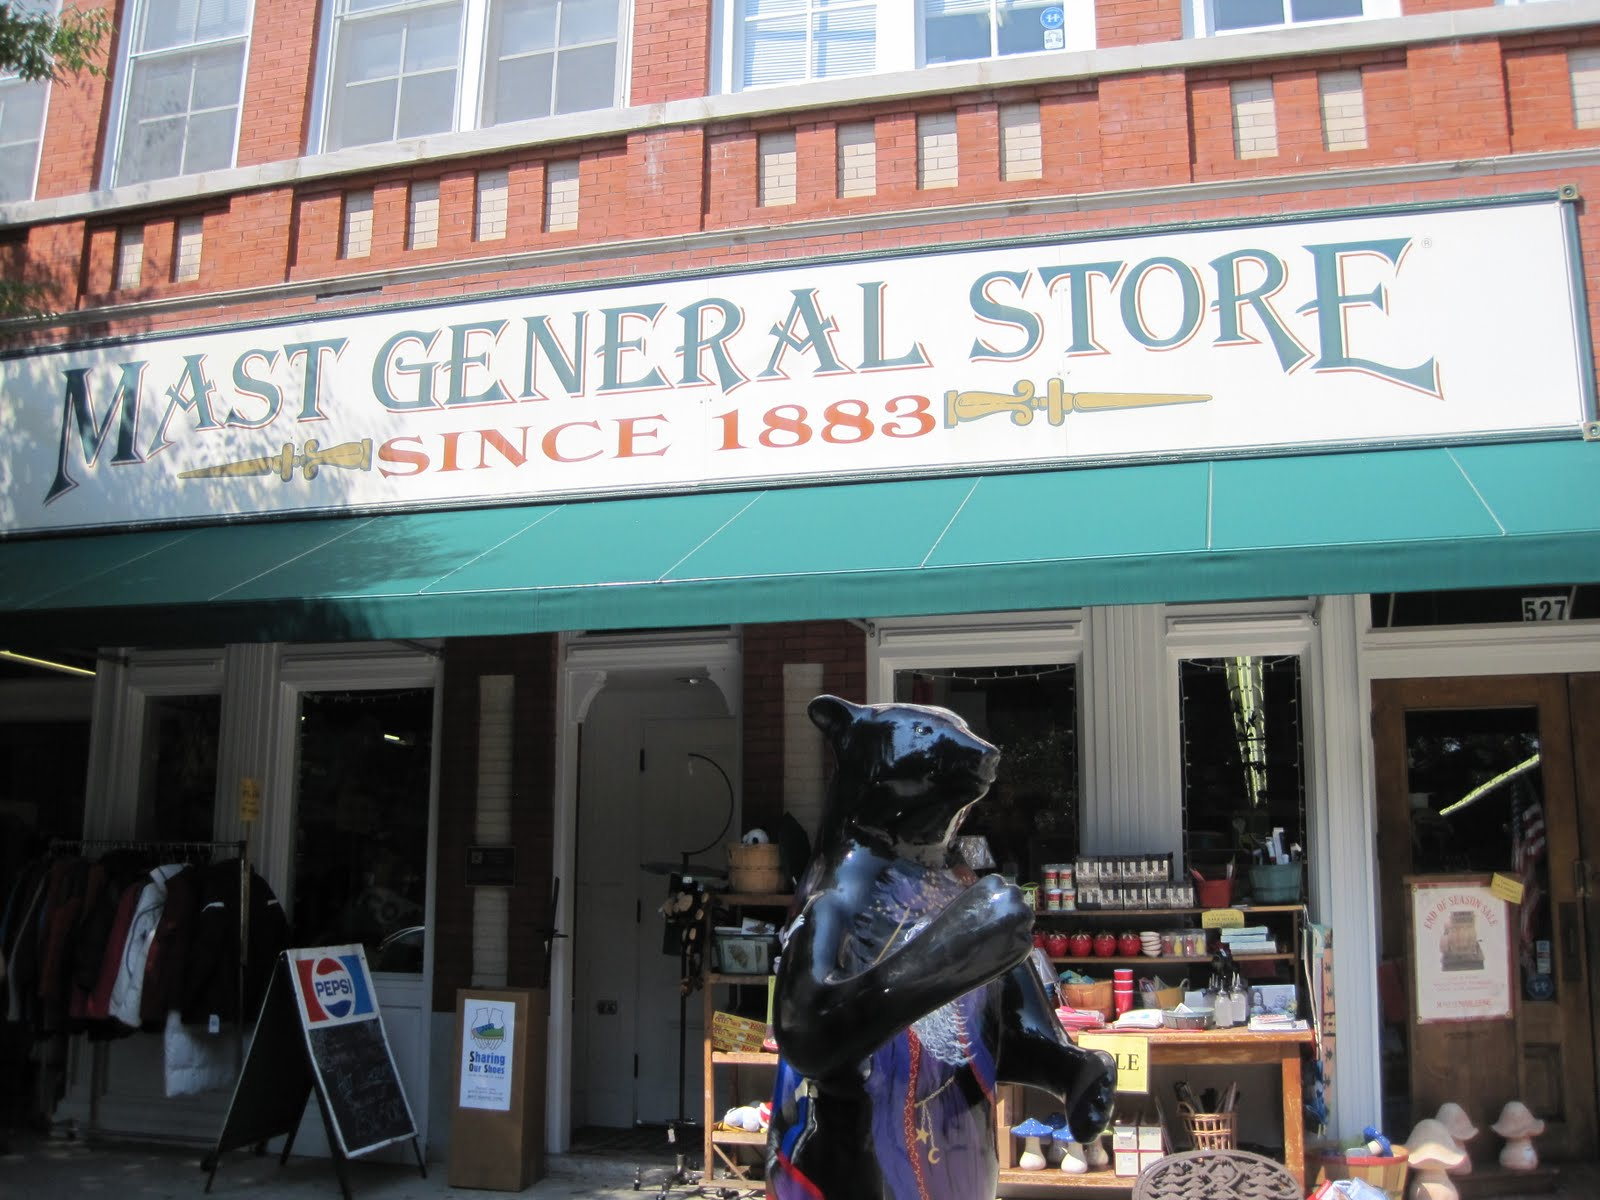 A general merchant store (also known as general merchandise store, general dealer or village shop) is a rural or small town store that carries a general line of merchandise. It carries a broad selection of merchandise, sometimes in a small space, where people from the town and surrounding rural areas come to purchase all their general goods.